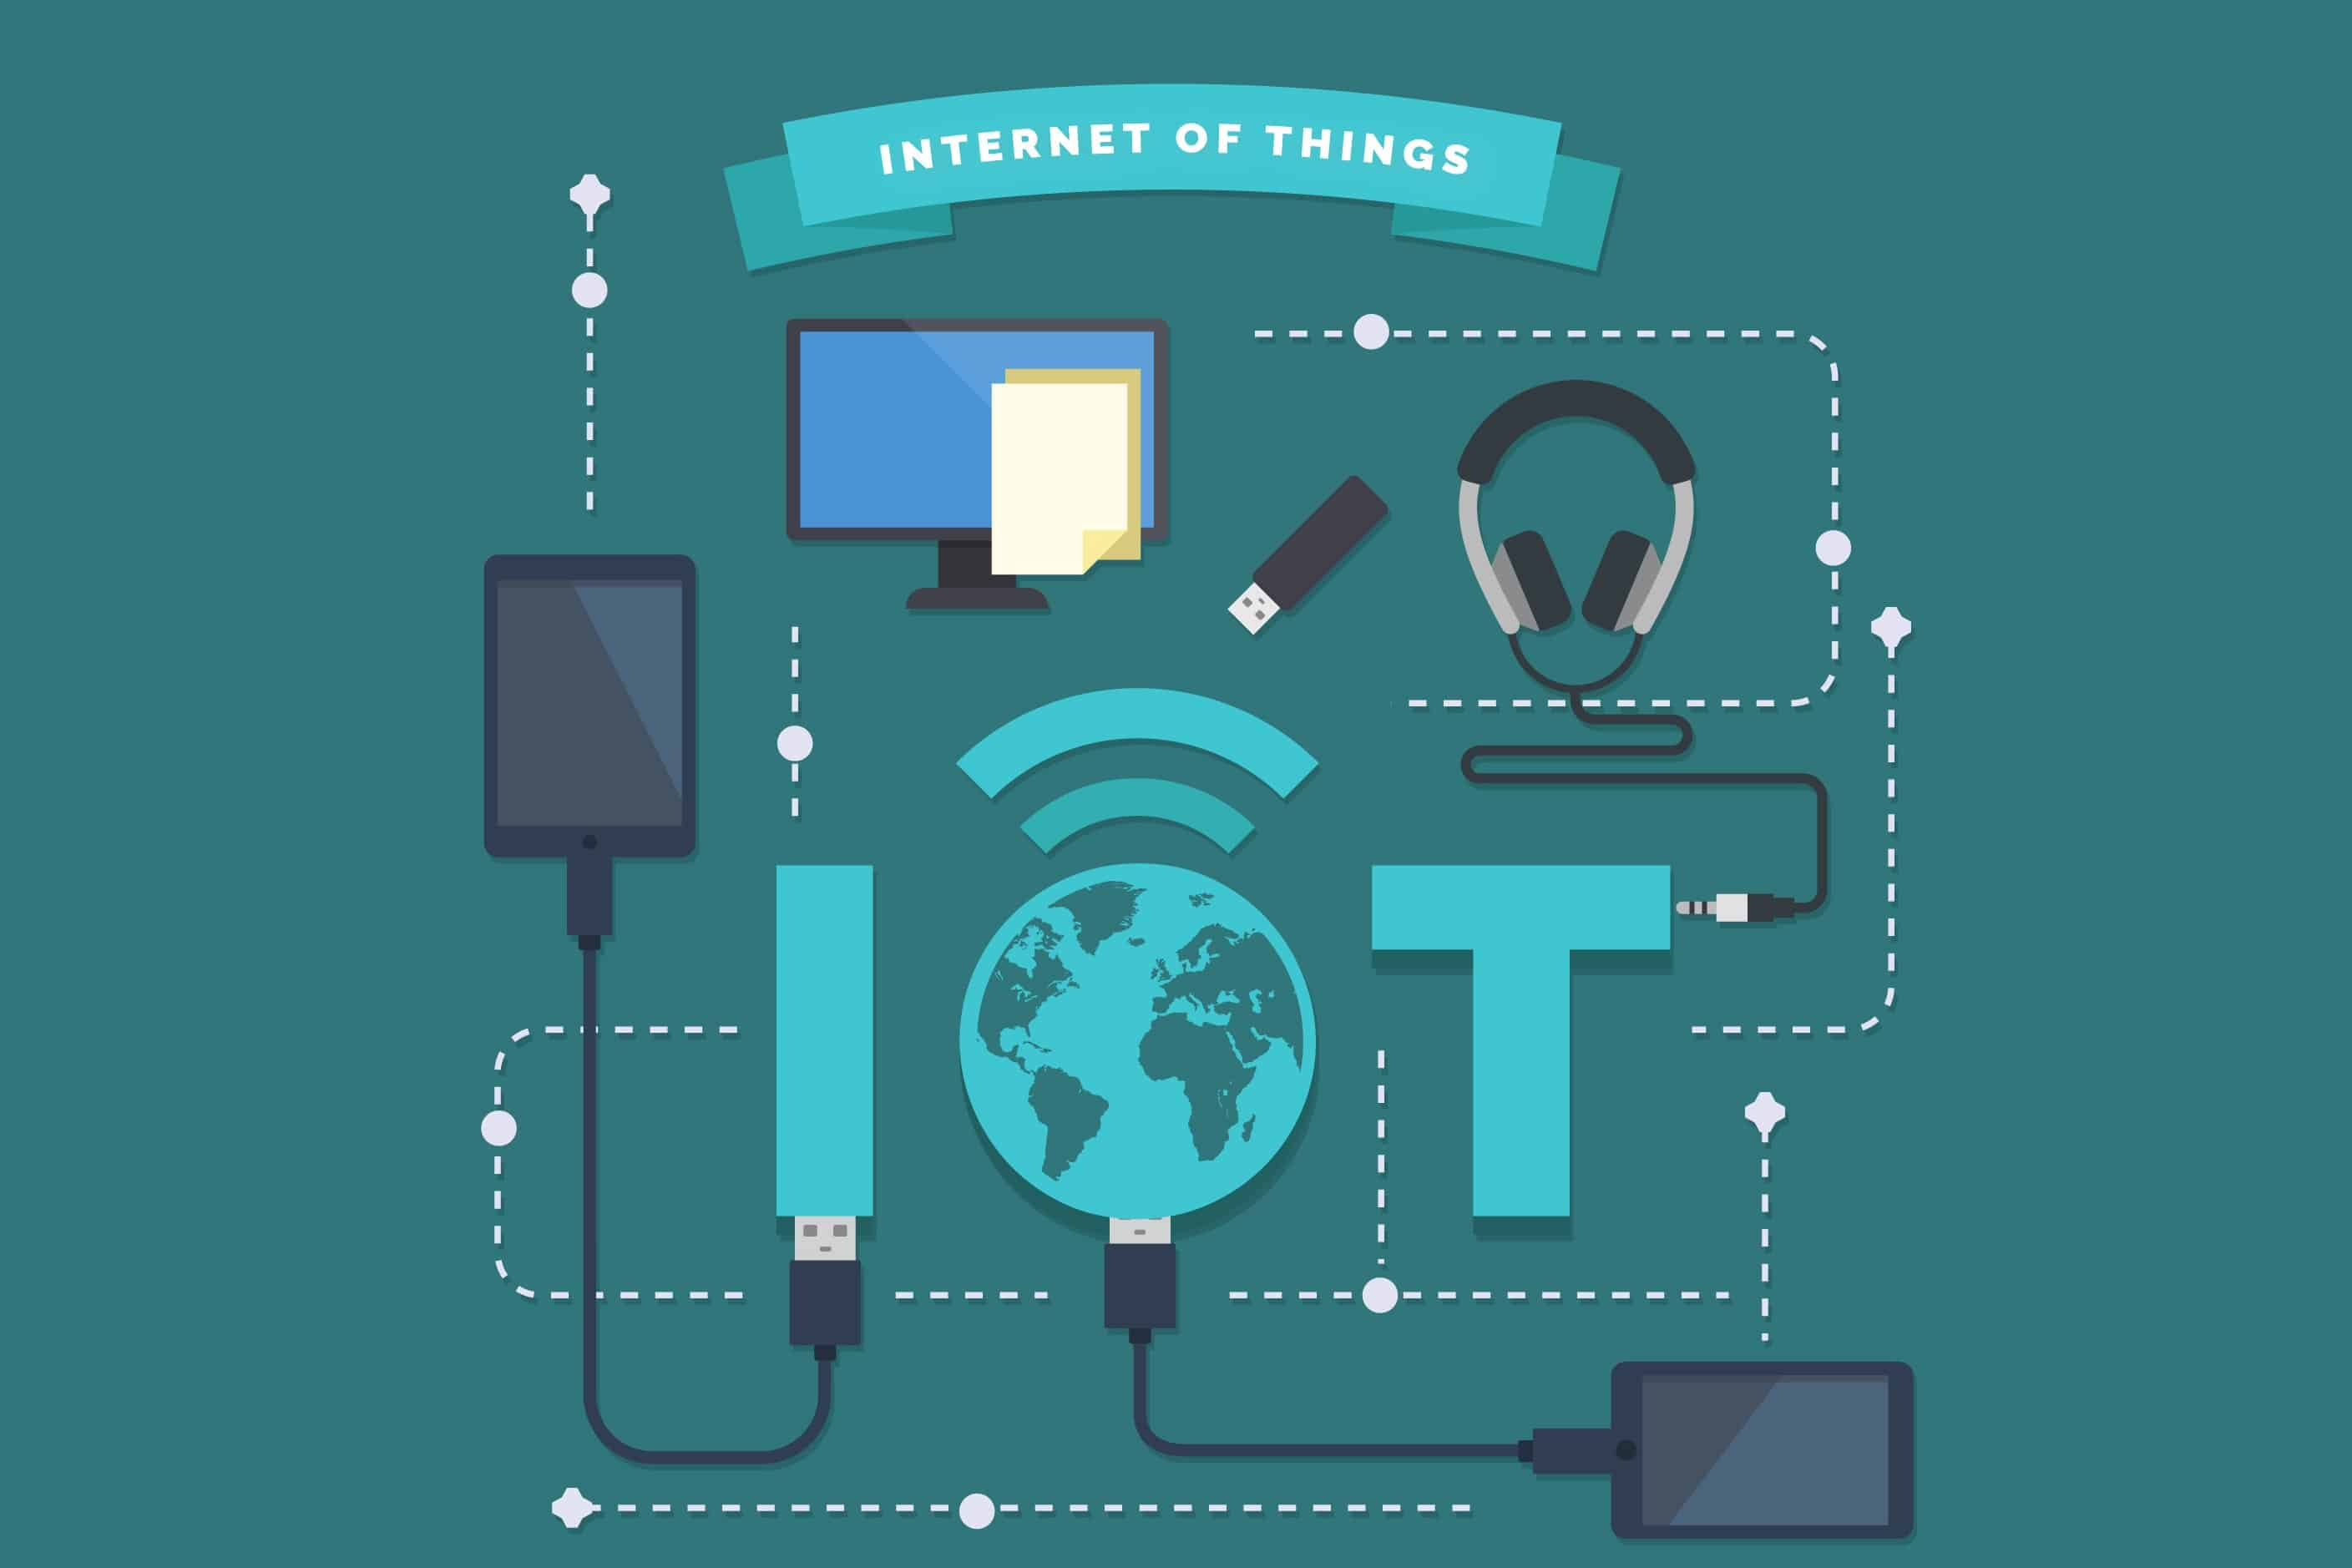 Smart sensor and production systems for industrial IOT